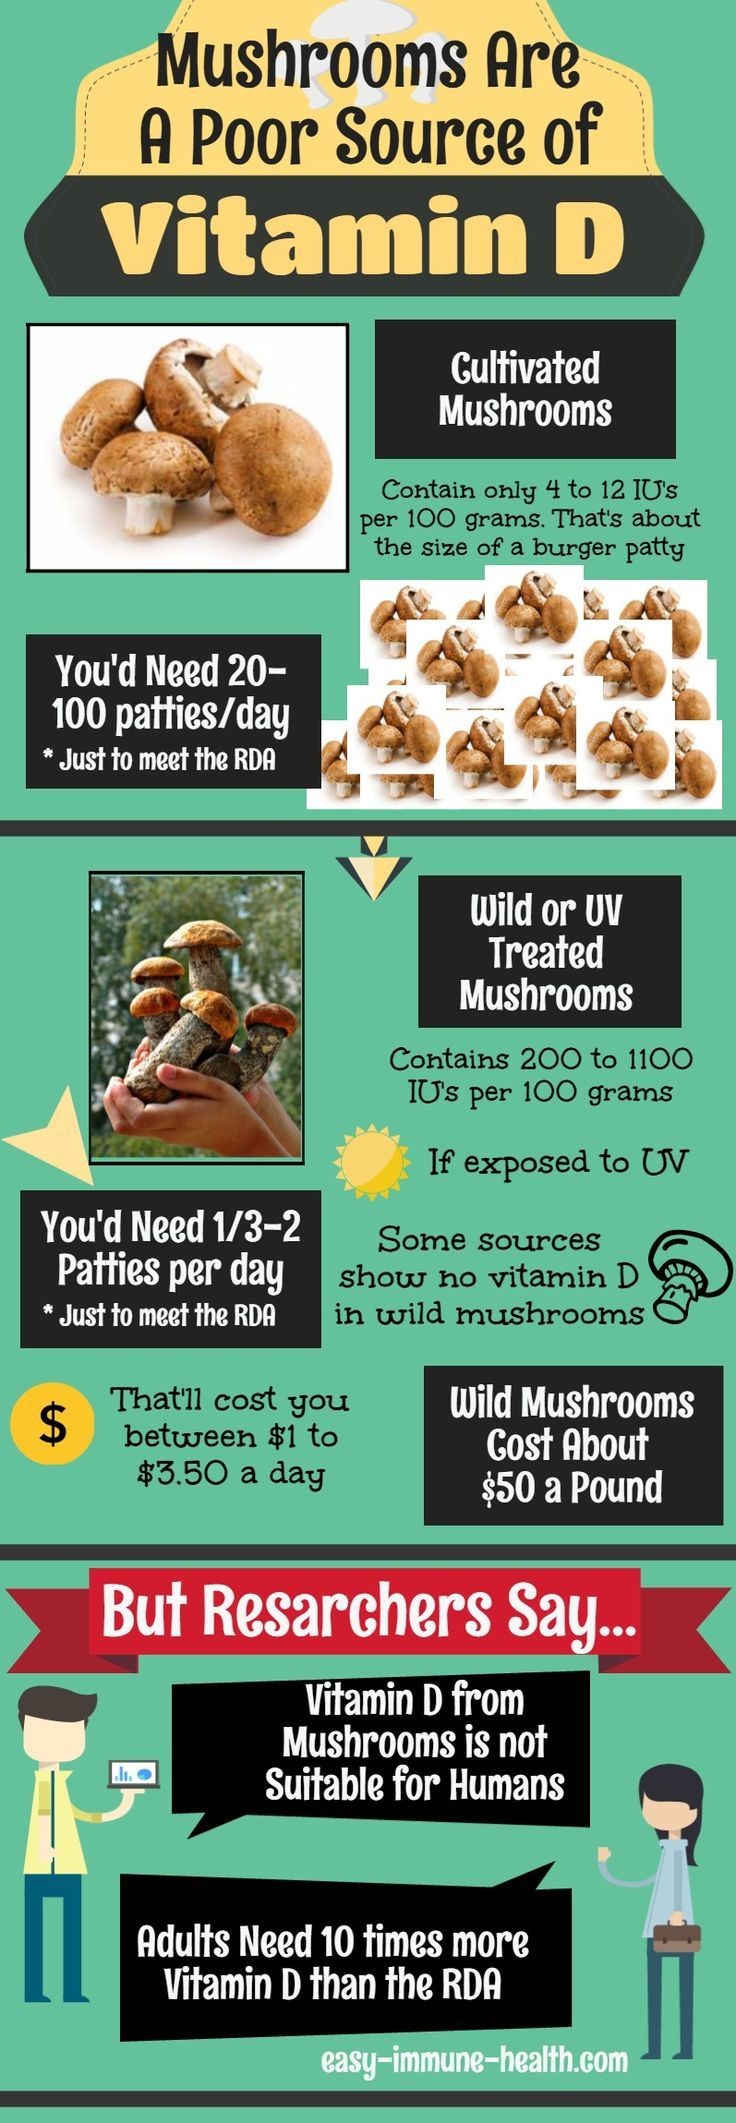 Why Mushrooms are a poor source of Vitamin D  http://blog.easy-immune-health.com/vitamin-d/why-mushrooms-are-a-poor-source-of-vitamin-d/